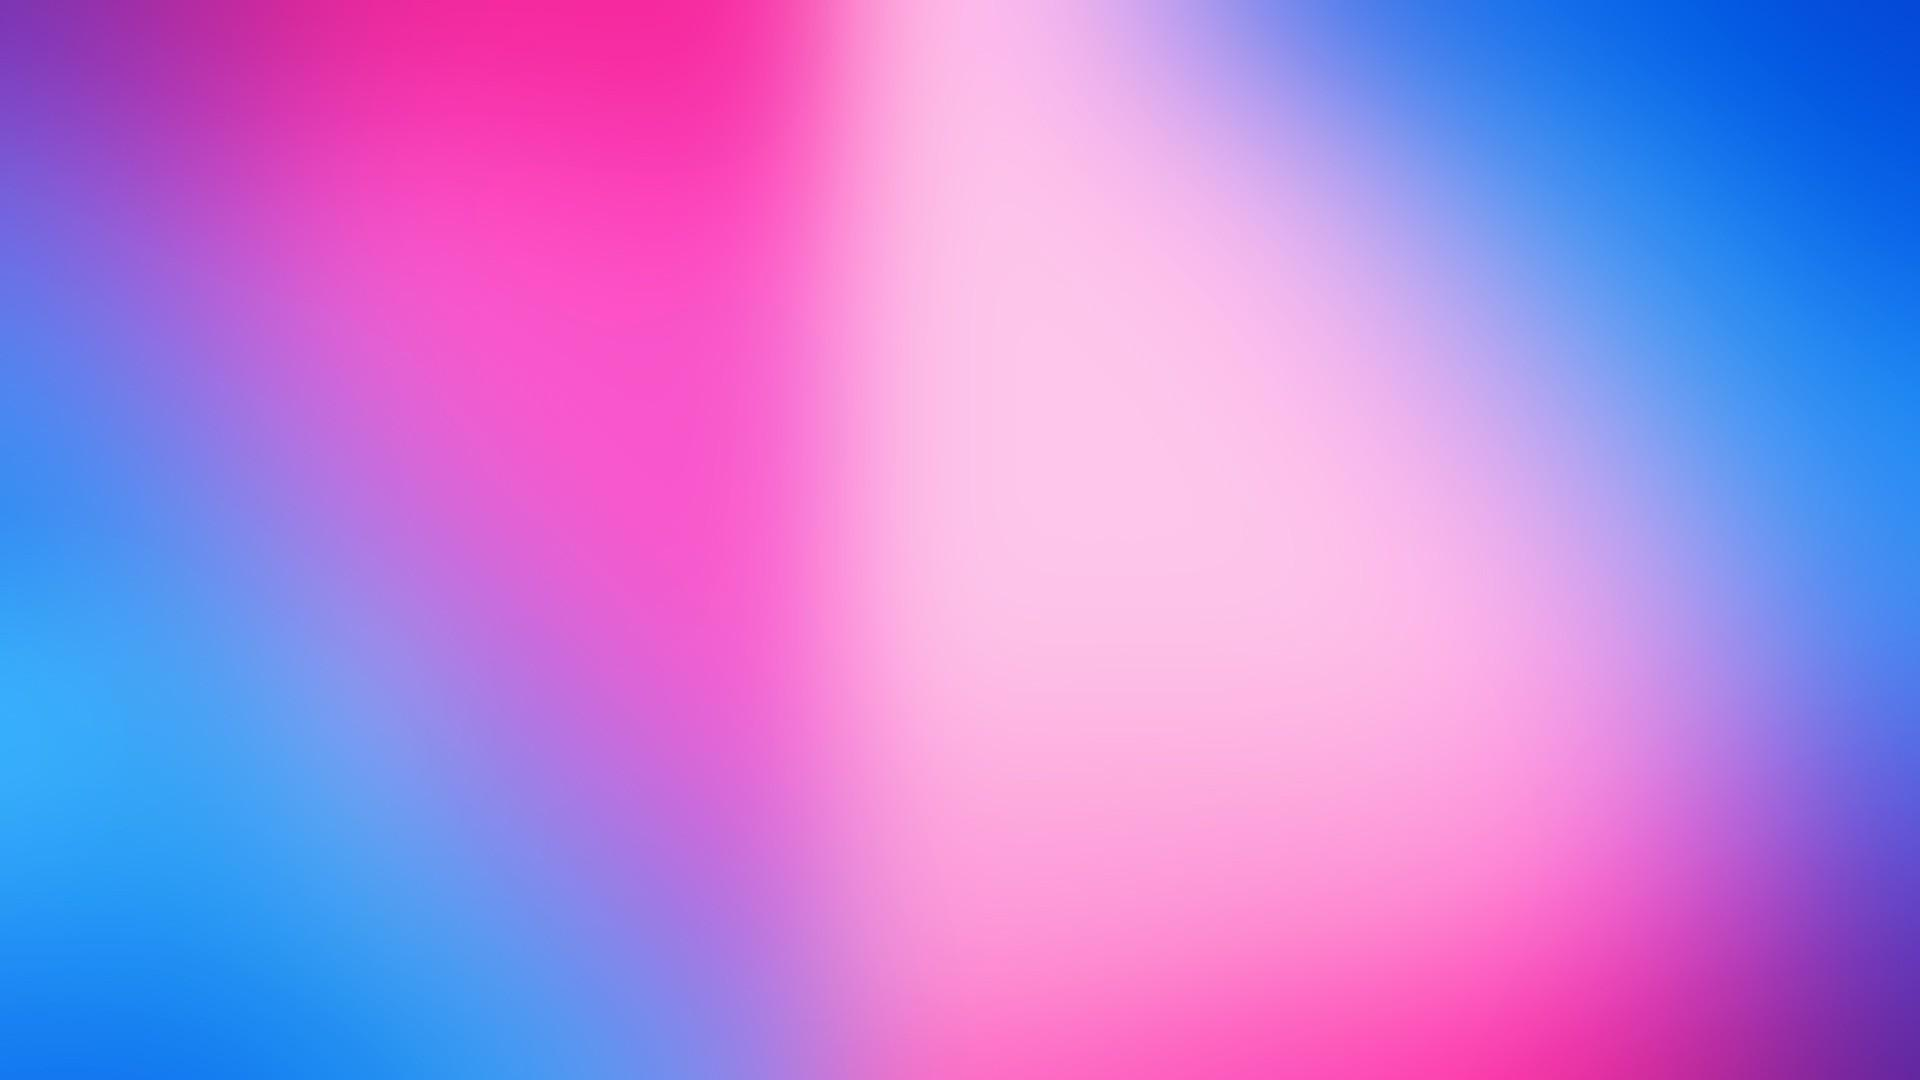 Pink And Blue Wallpapers - Wallpaper Cave